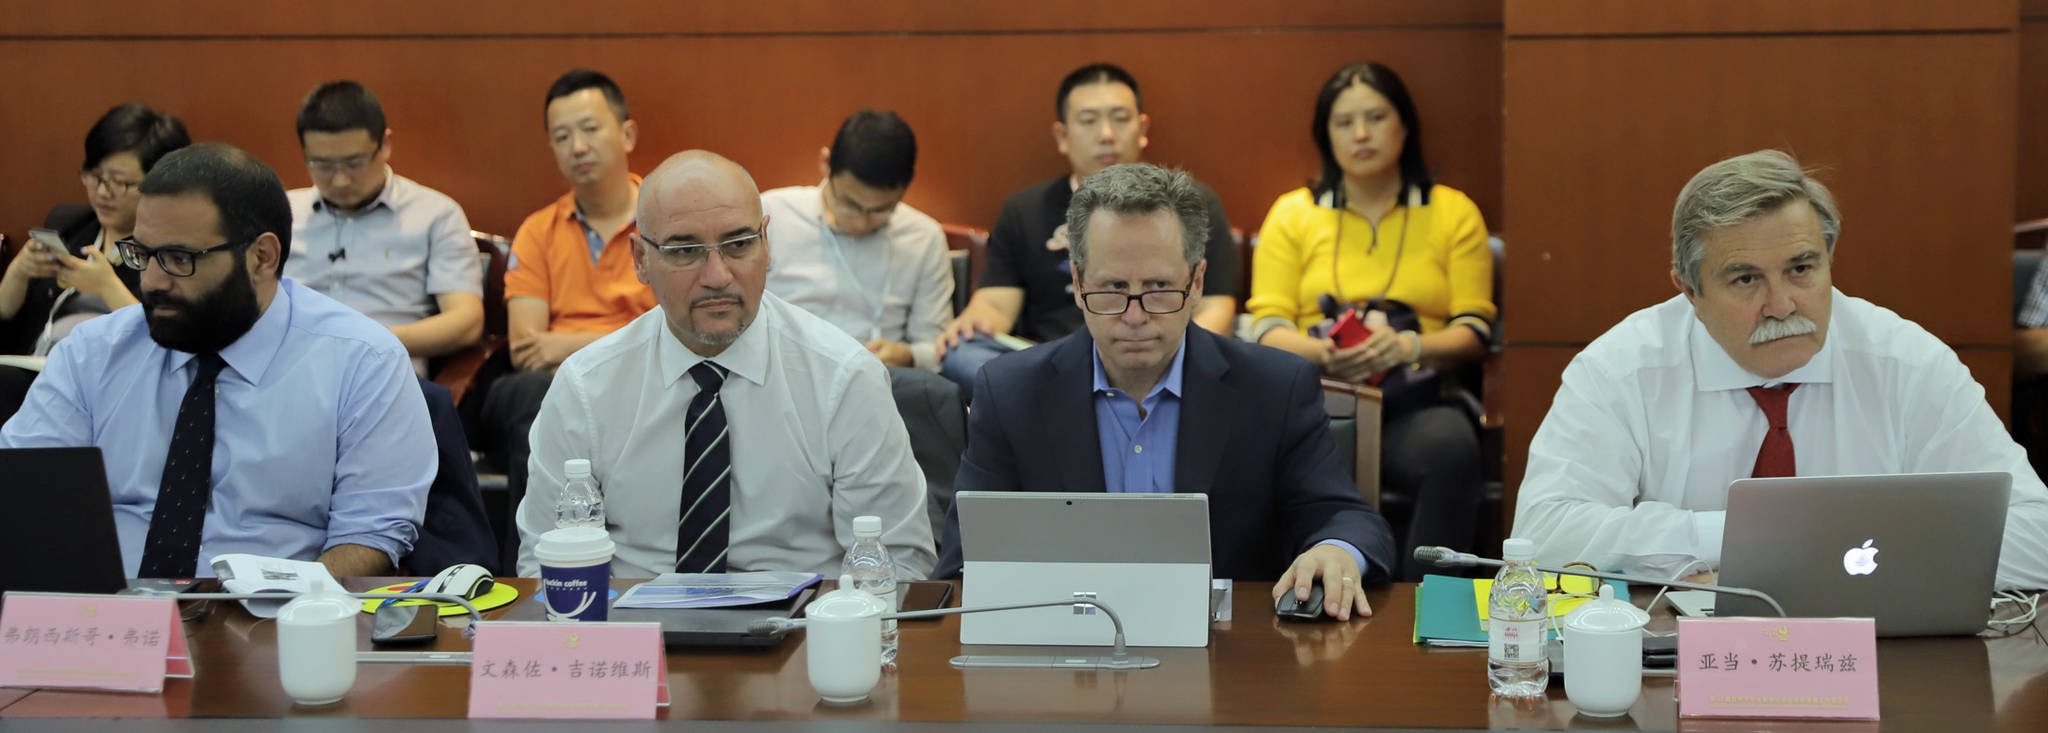 Naples 2019 general coordinator Adam Sotiriadis offered plenty of insights for Chengdu 2021 during his debrief of July's Summer Universiade ©FISU